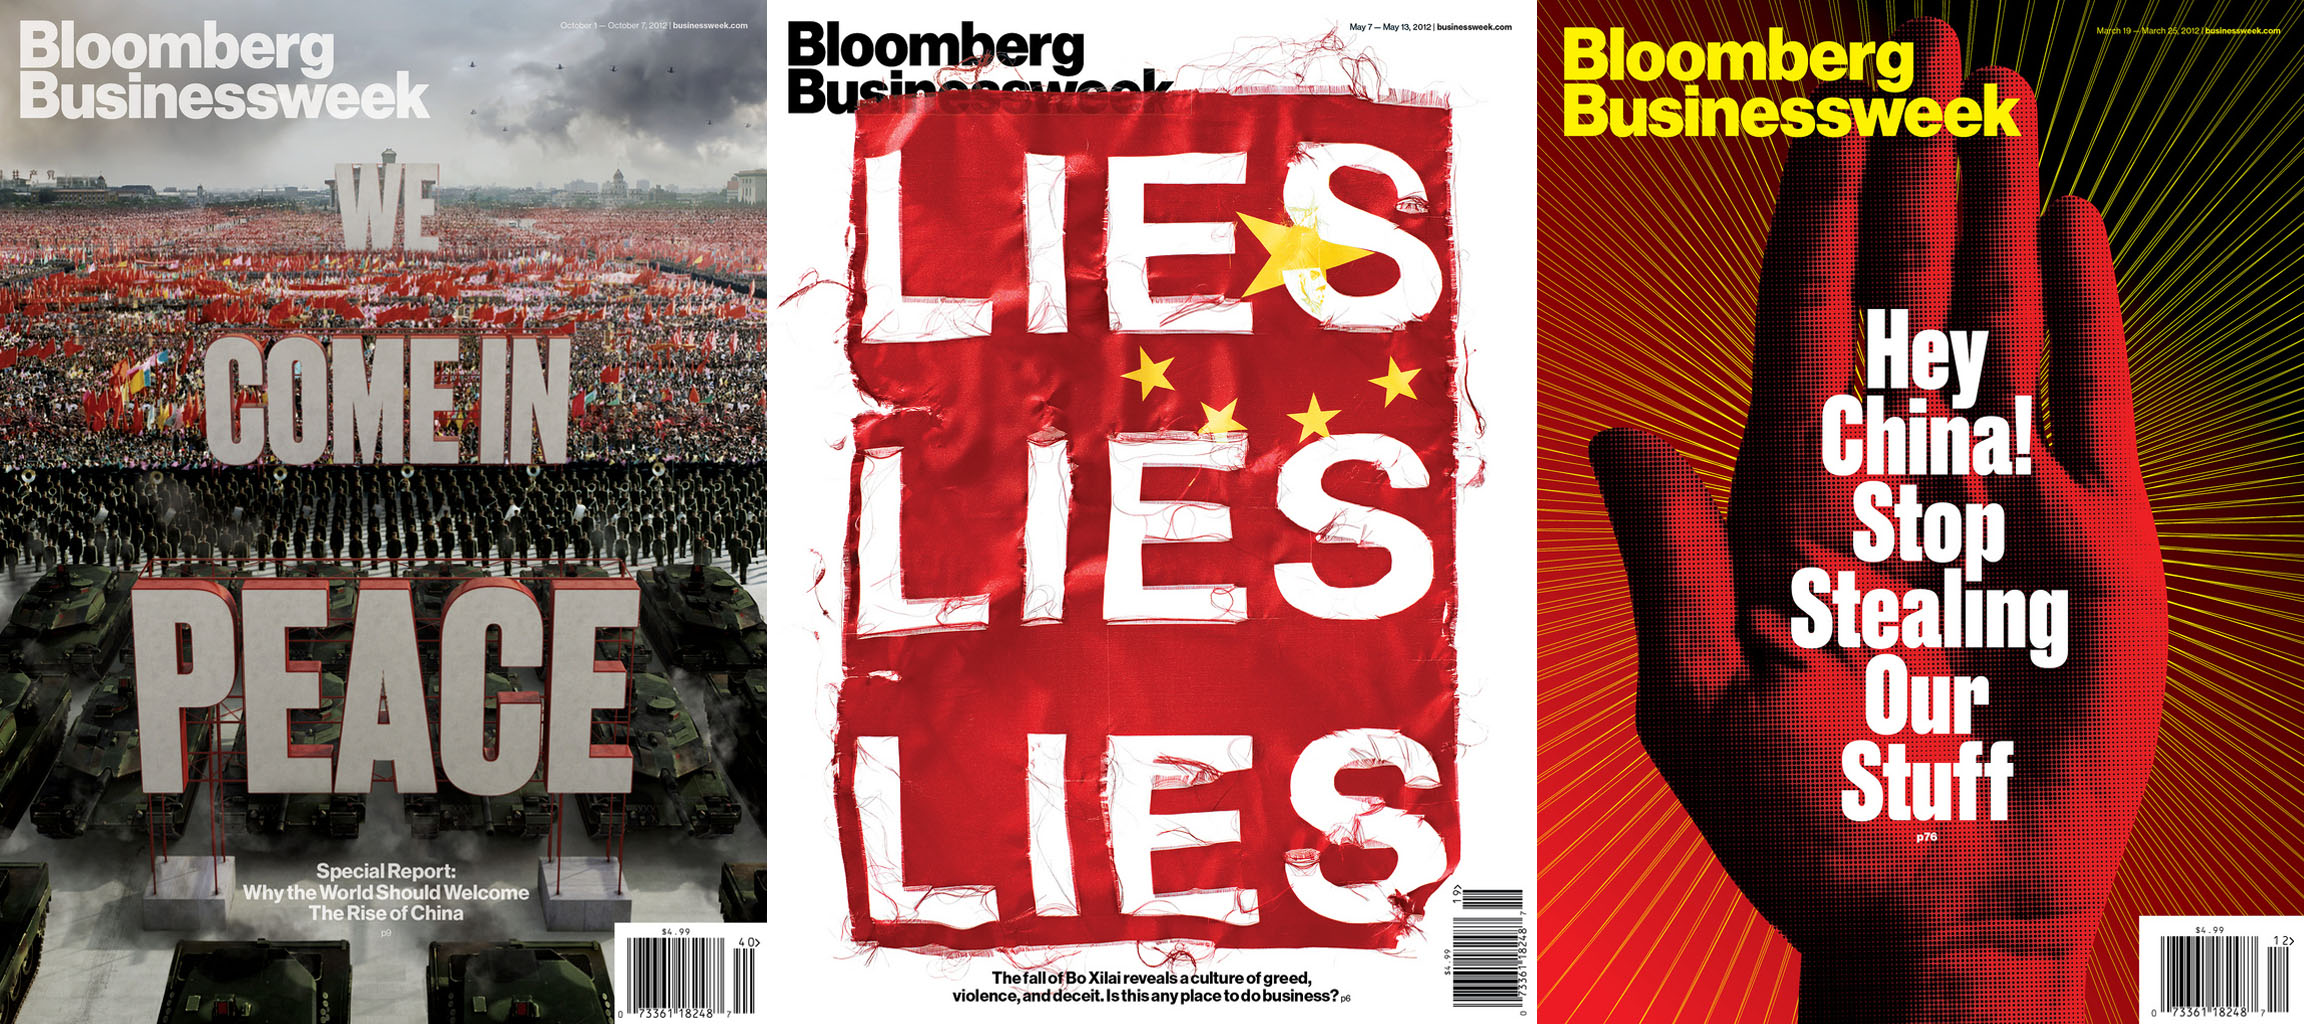 Businessweek covers about China